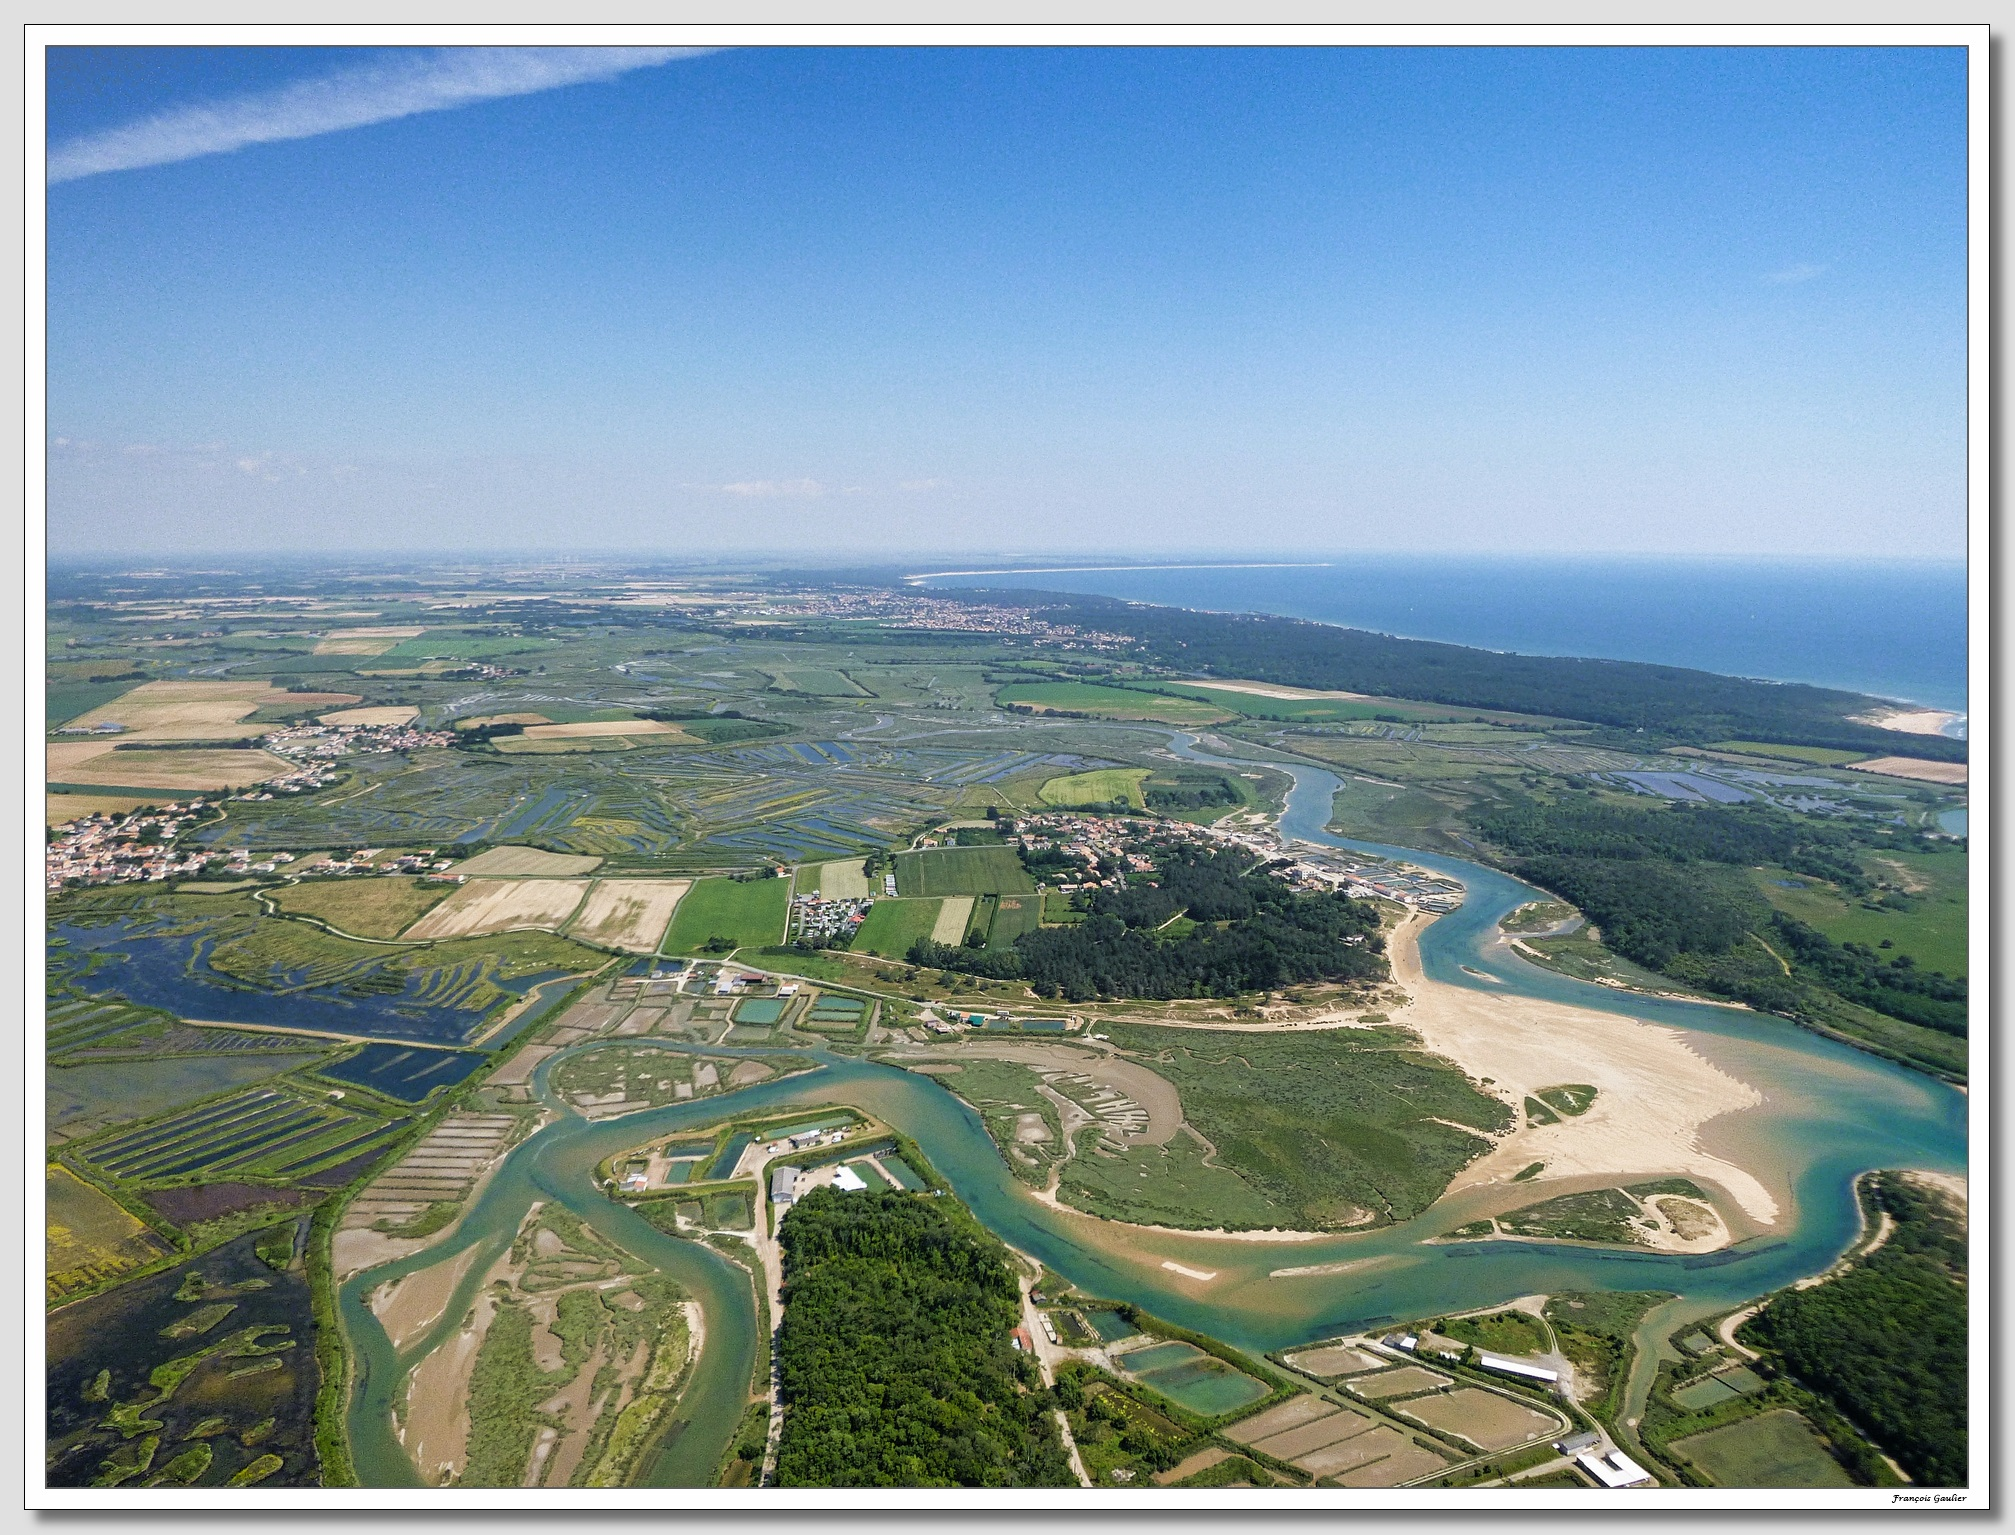 Le grand site naturel du Veillon à Talmont St Hilaire (Vendée)